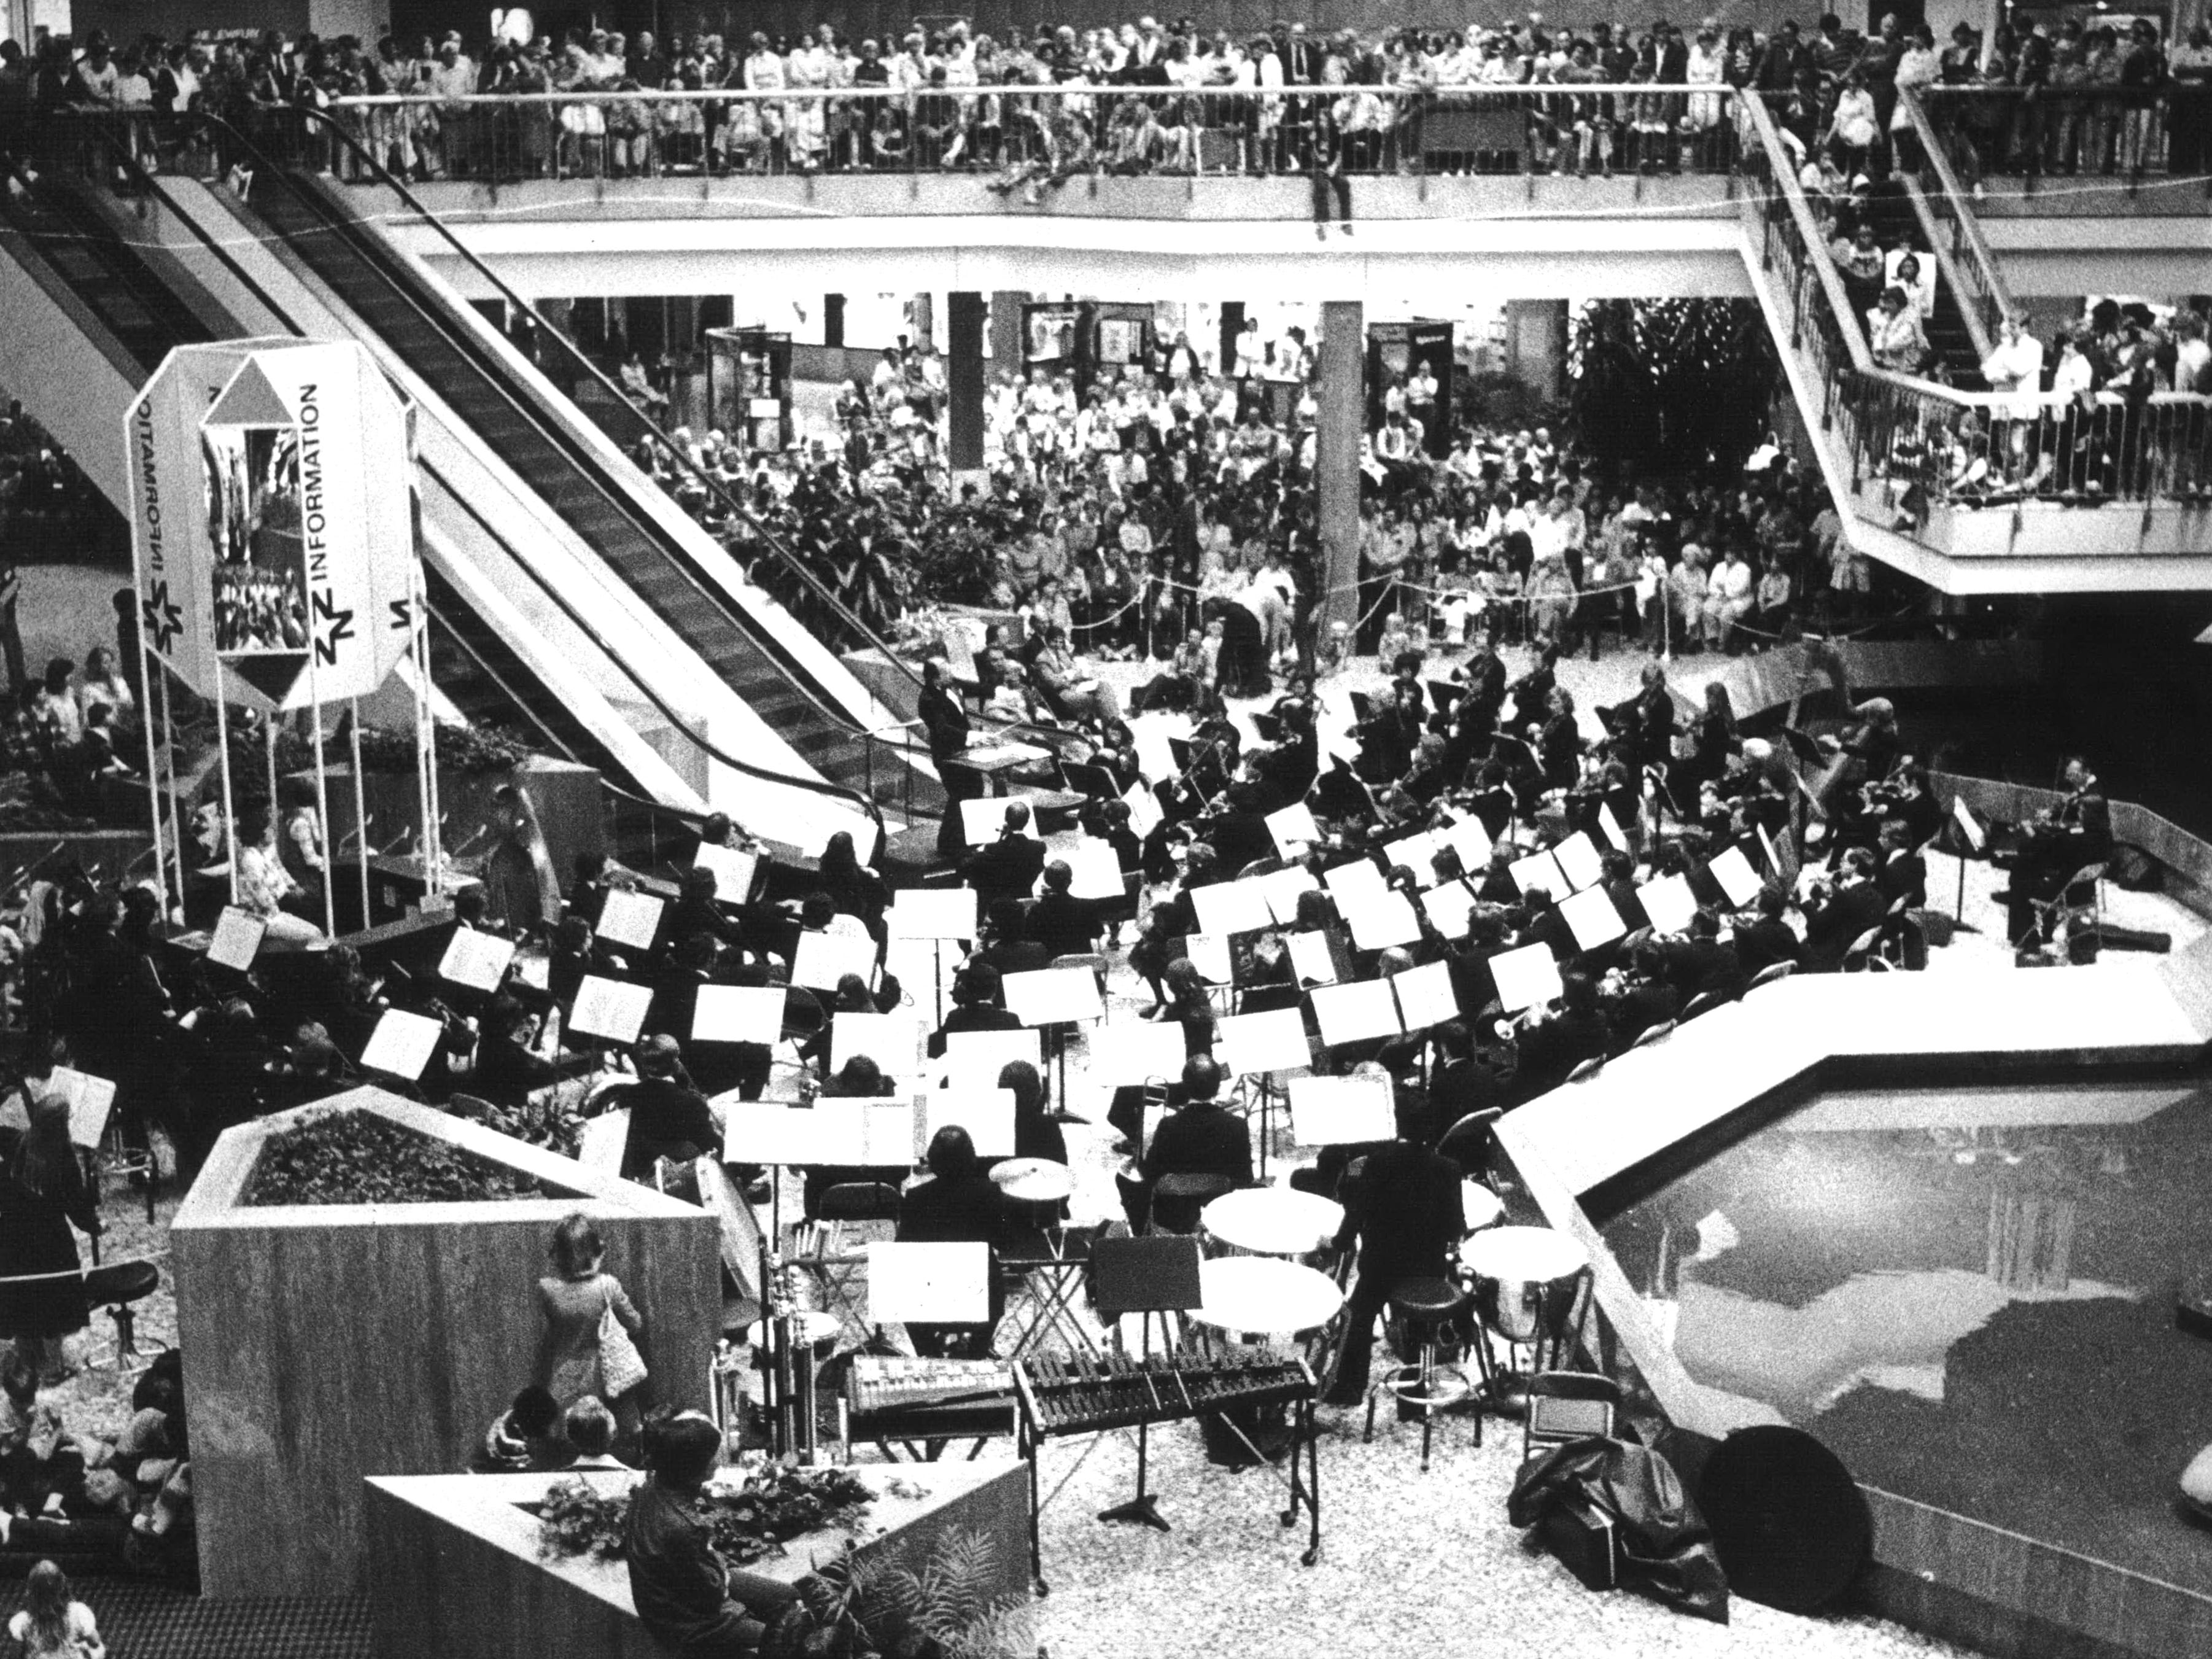 June 1977: Shoppers were pleasantly distracted by the Milwaukee Symphony Orchestra at Northridge Mall.